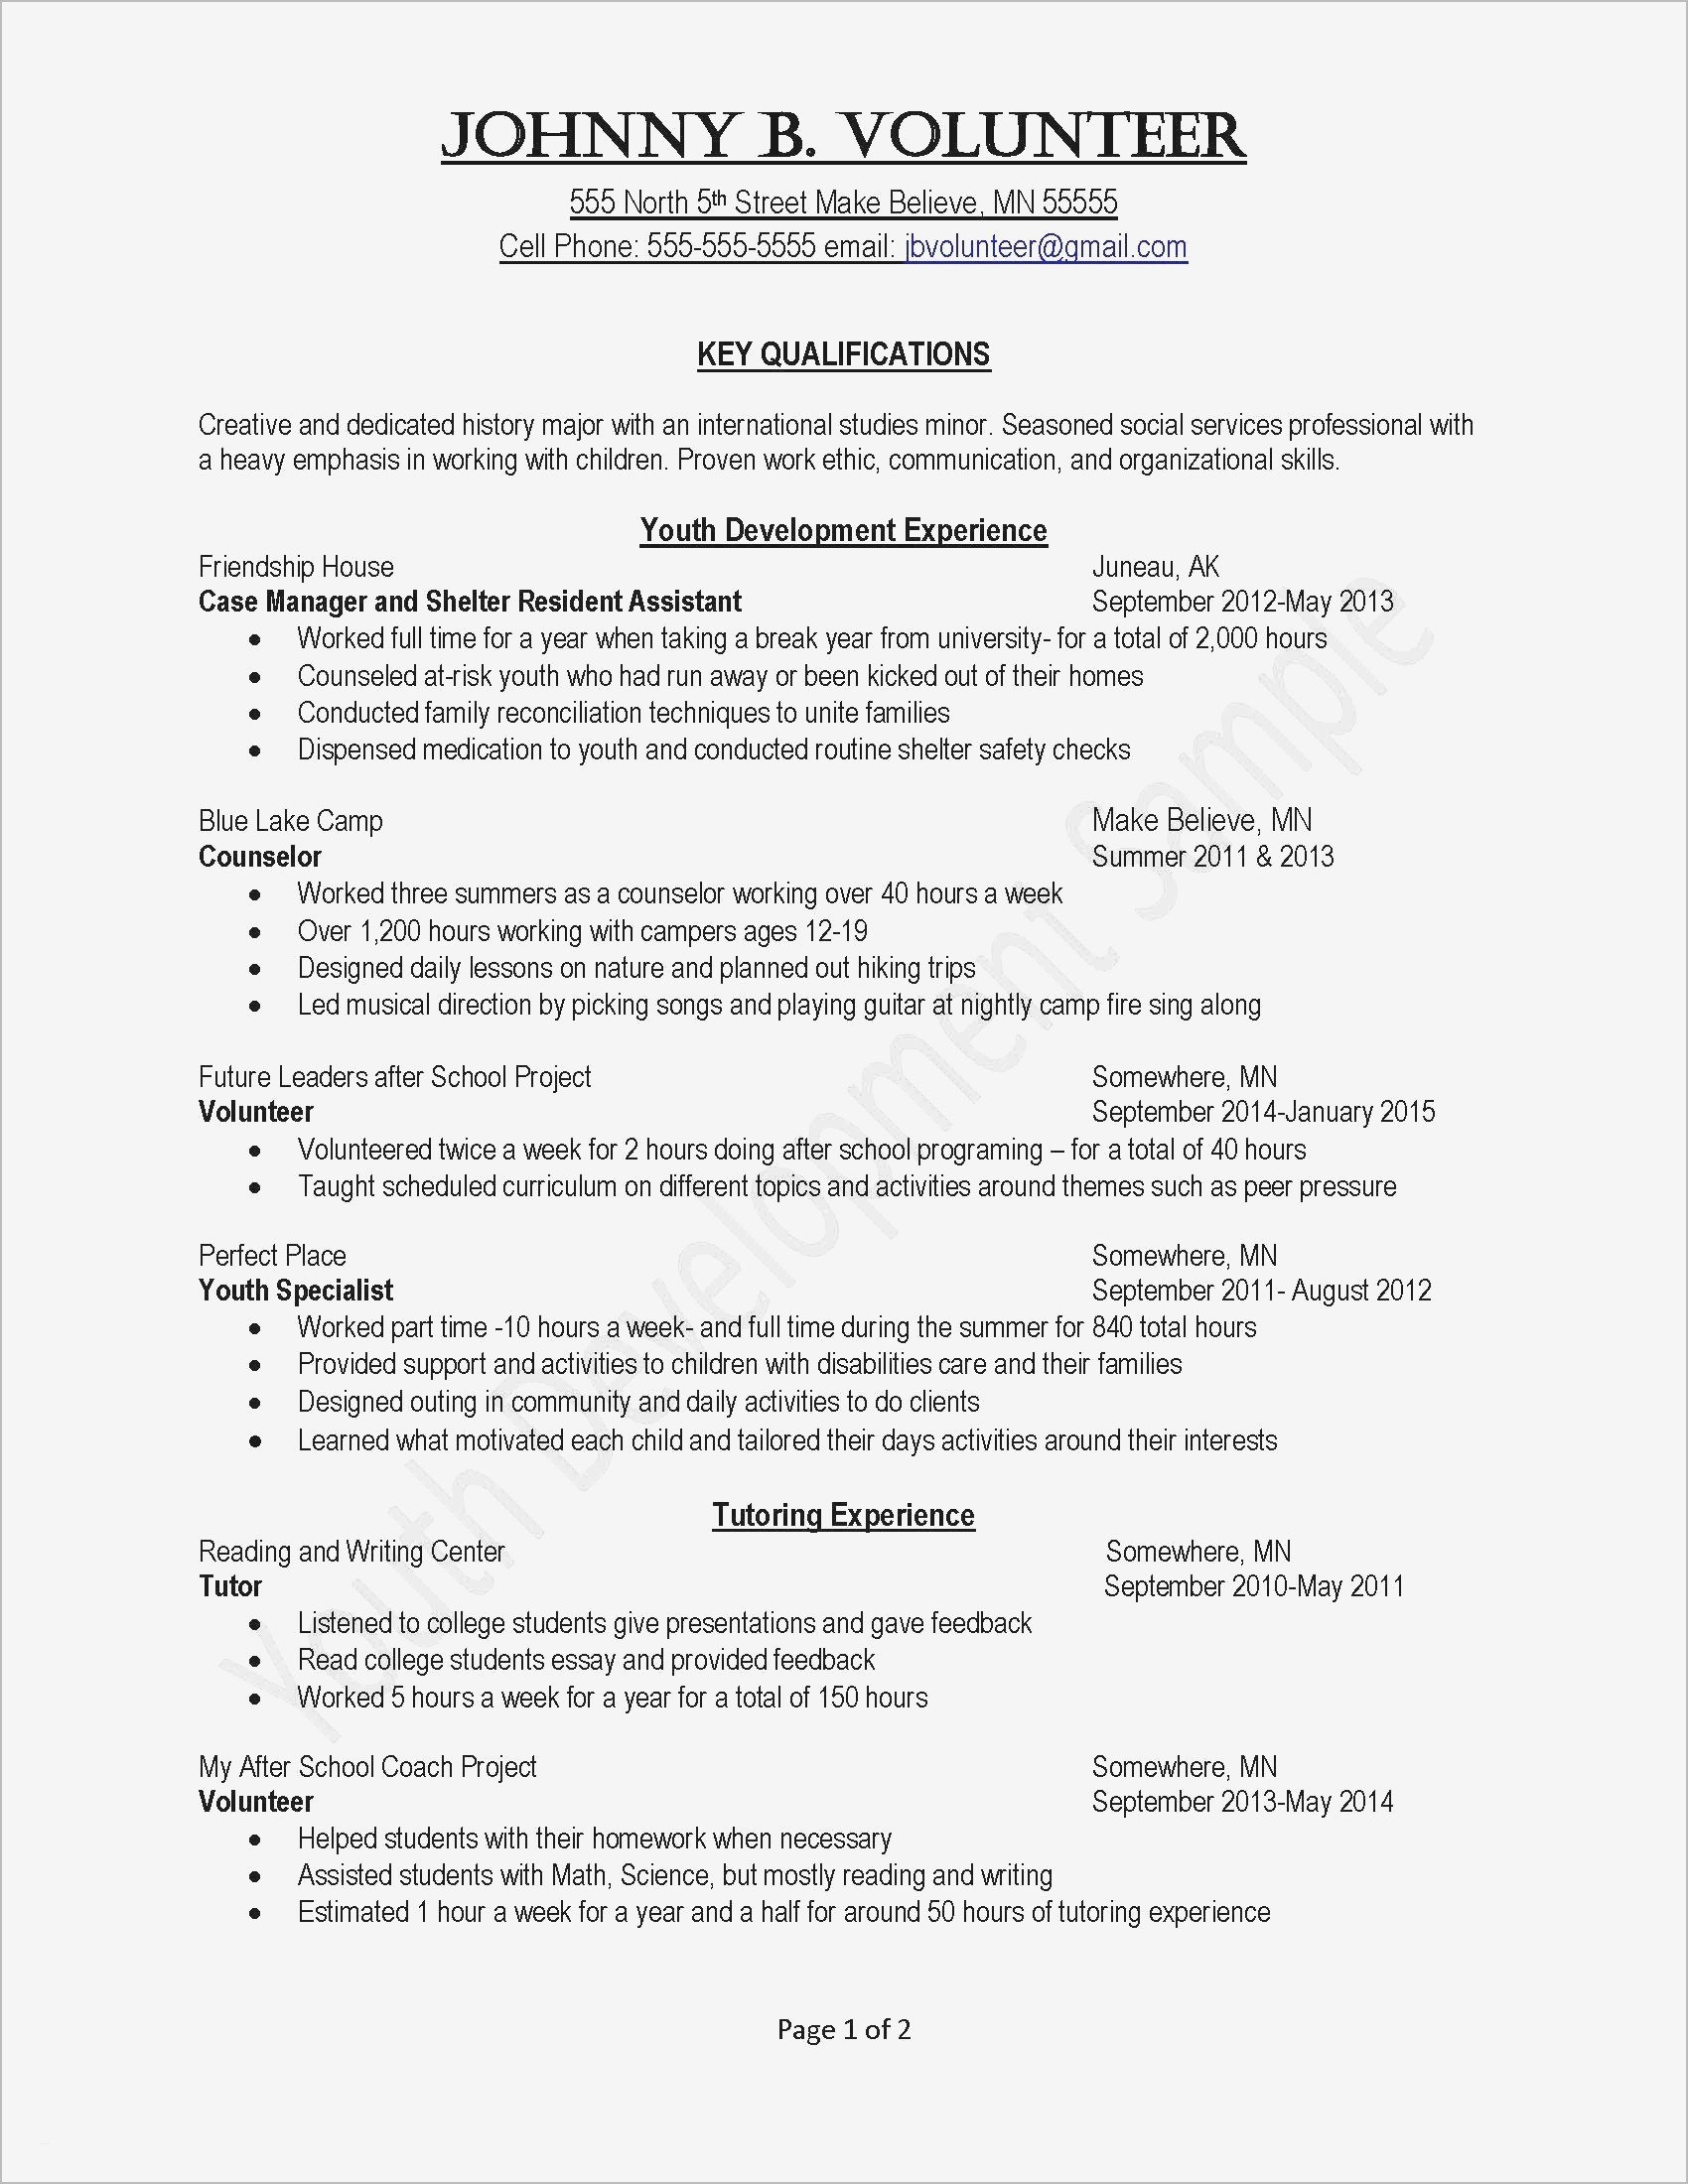 Teacher Application Cover Letter Template - Cover Letter for Applying Teacher Job Refrence Job Fer Letter